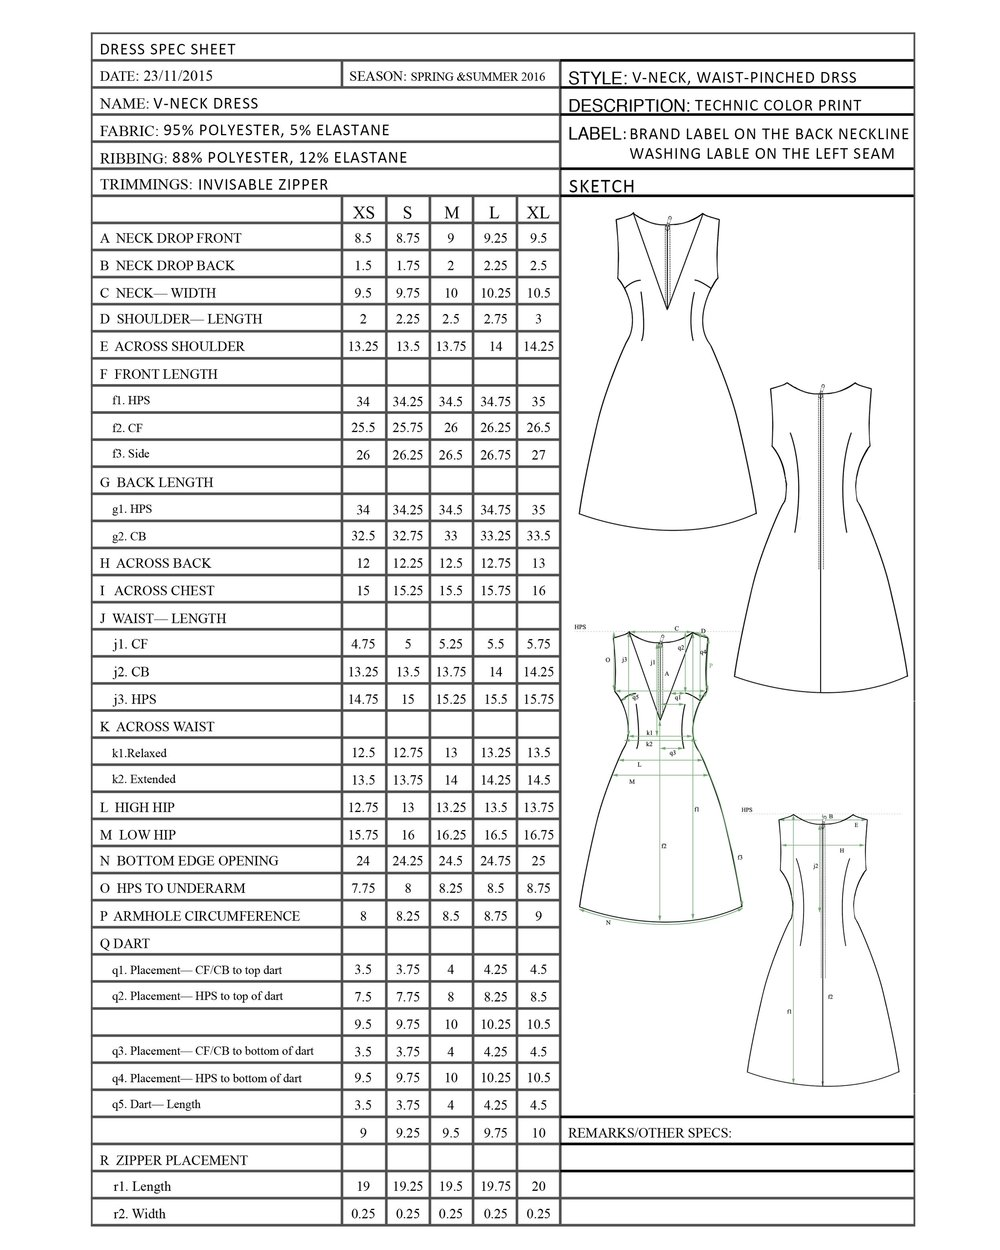 Dress Spec Sheet.jpg